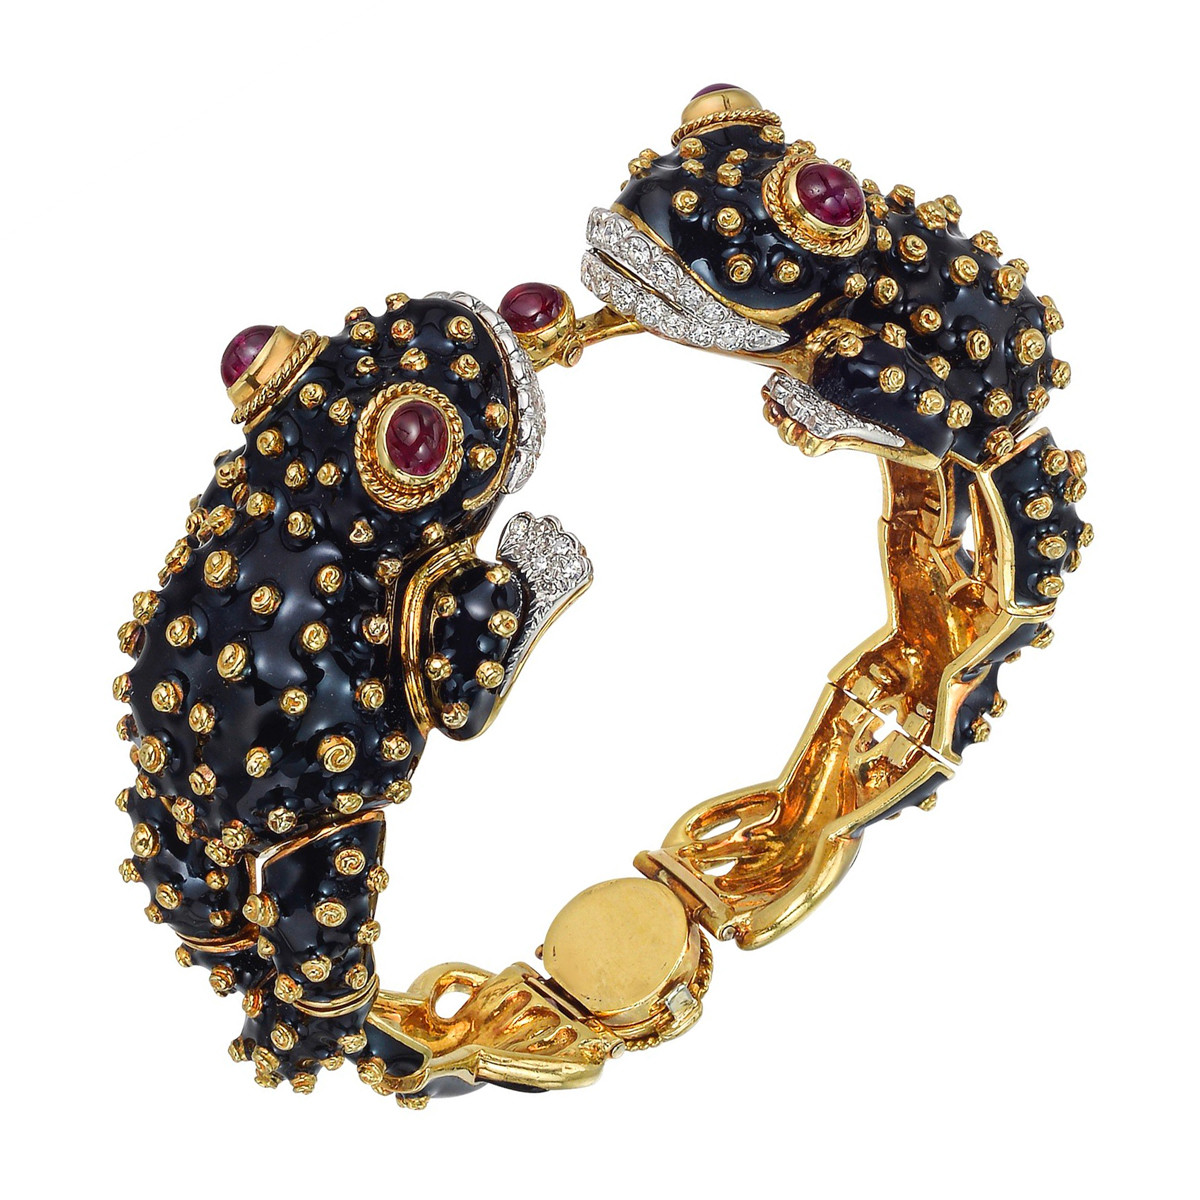 18k Yellow Gold, Ruby & Enamel Frog Bracelet